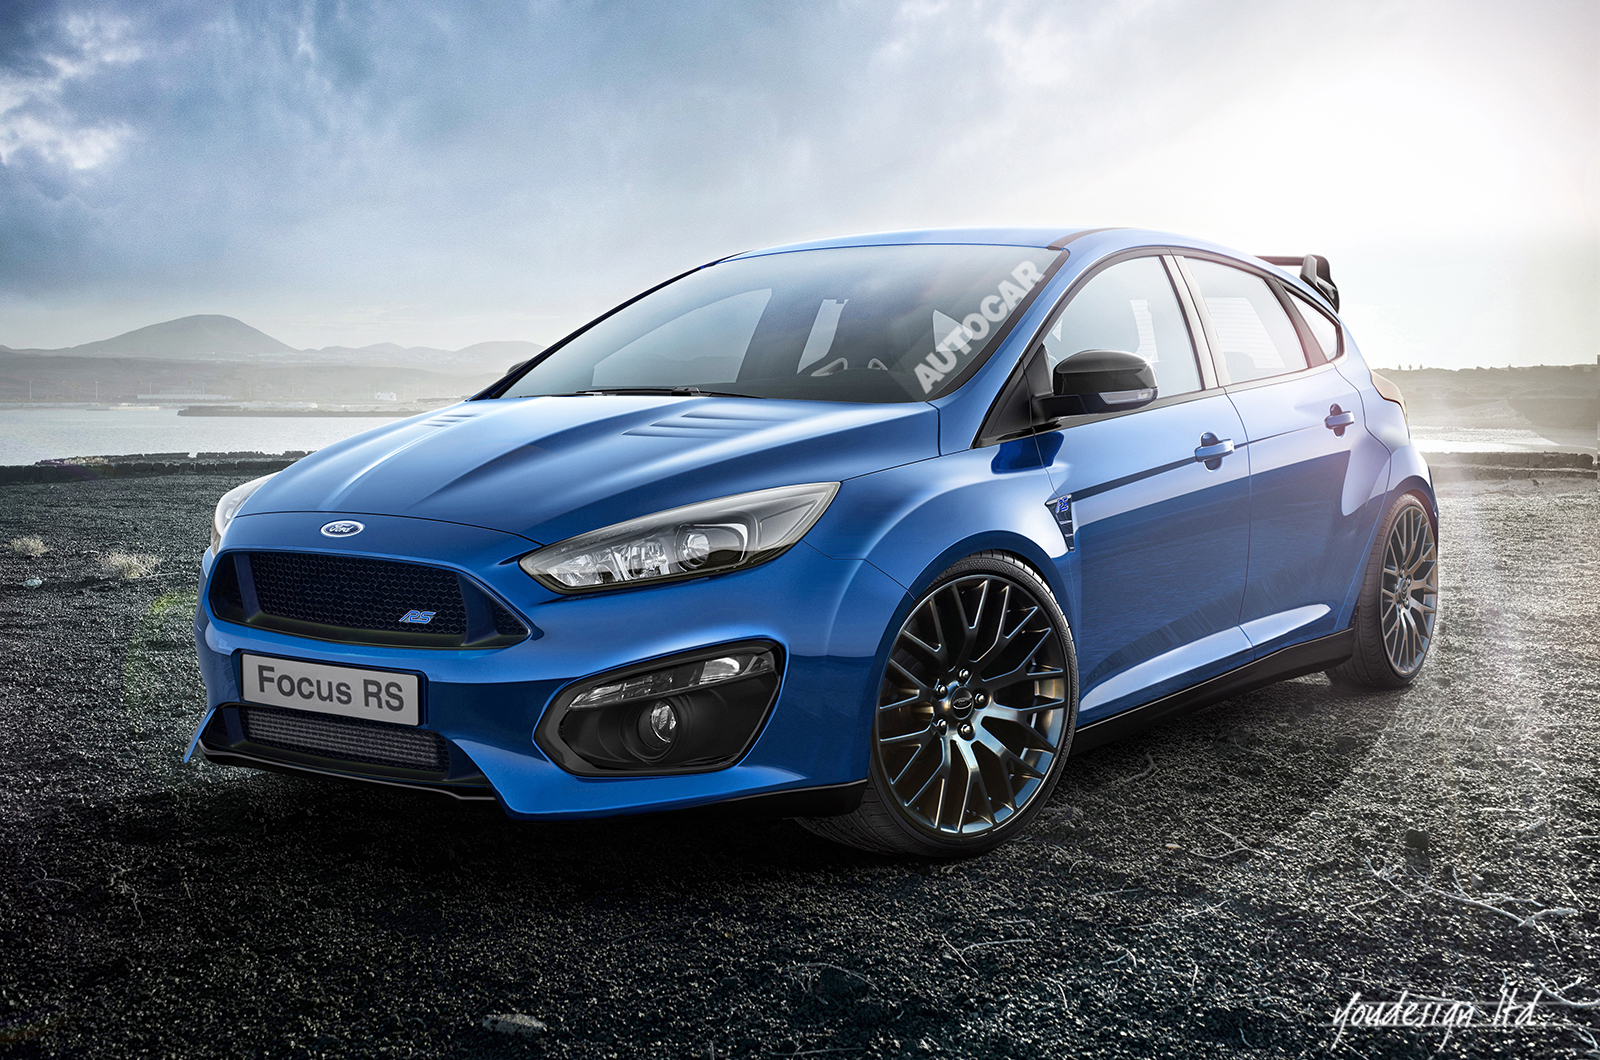 2016 ford focus rs spied almost undisguised page 8. Black Bedroom Furniture Sets. Home Design Ideas